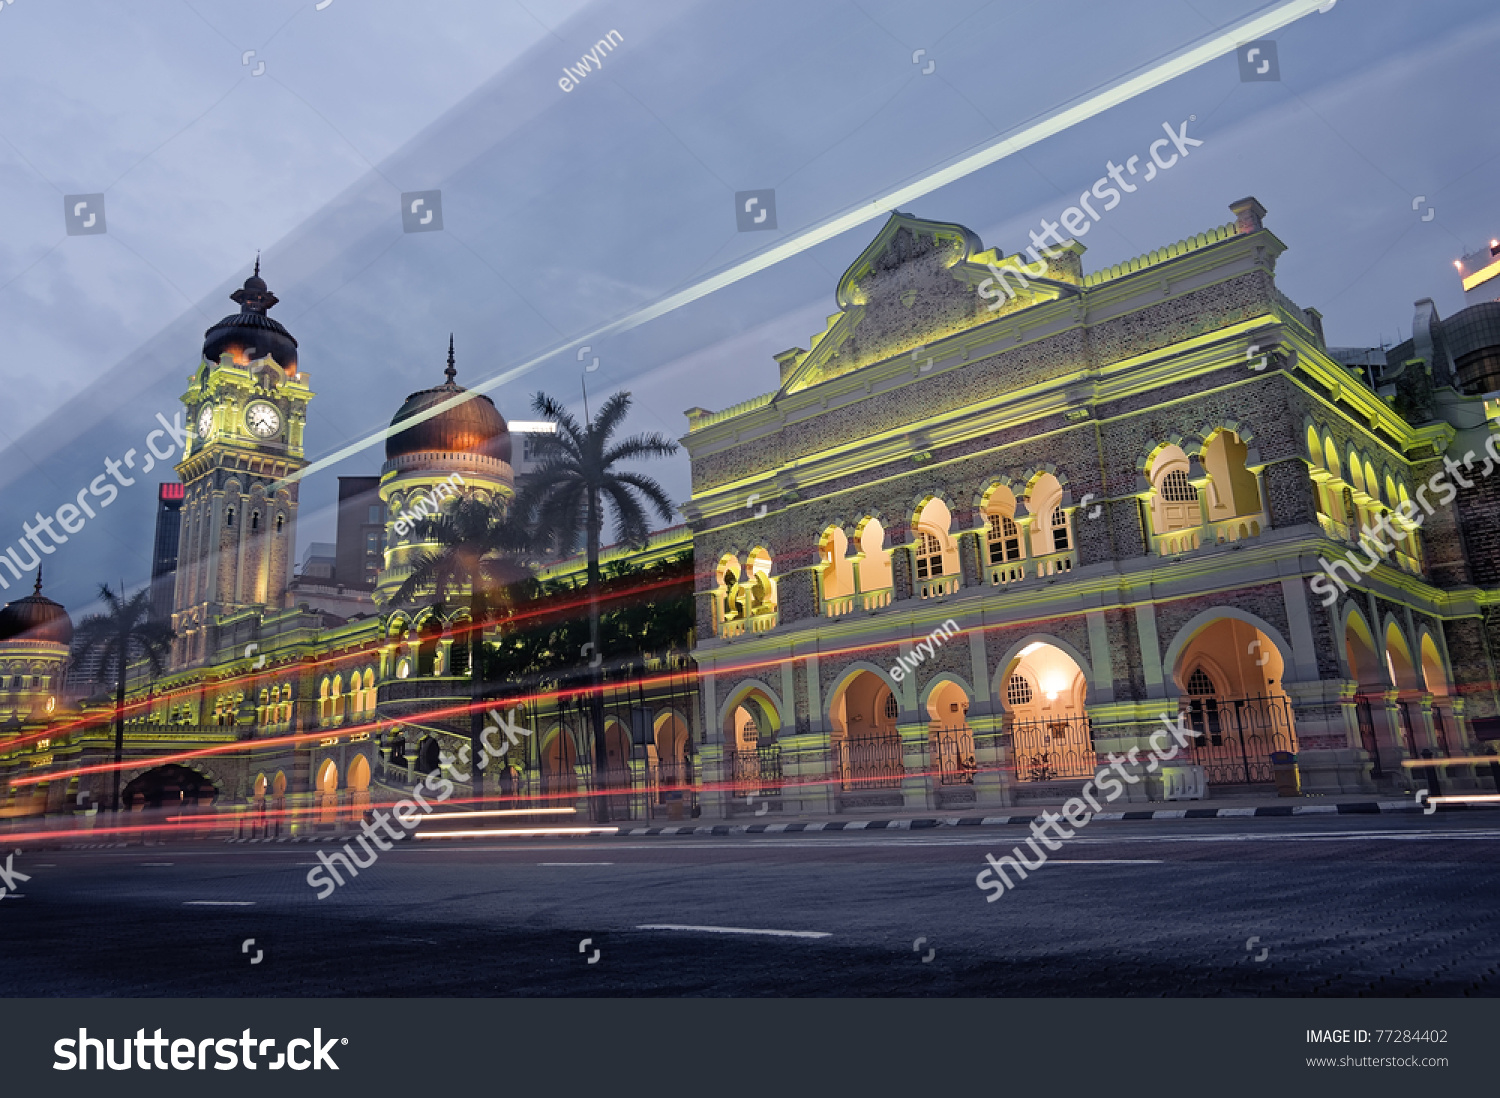 kl night dating place 12 unique first date ideas in kl that'll guarantee you a second date 12 unique first date ideas in kl will till night, which makes it the perfect place to.